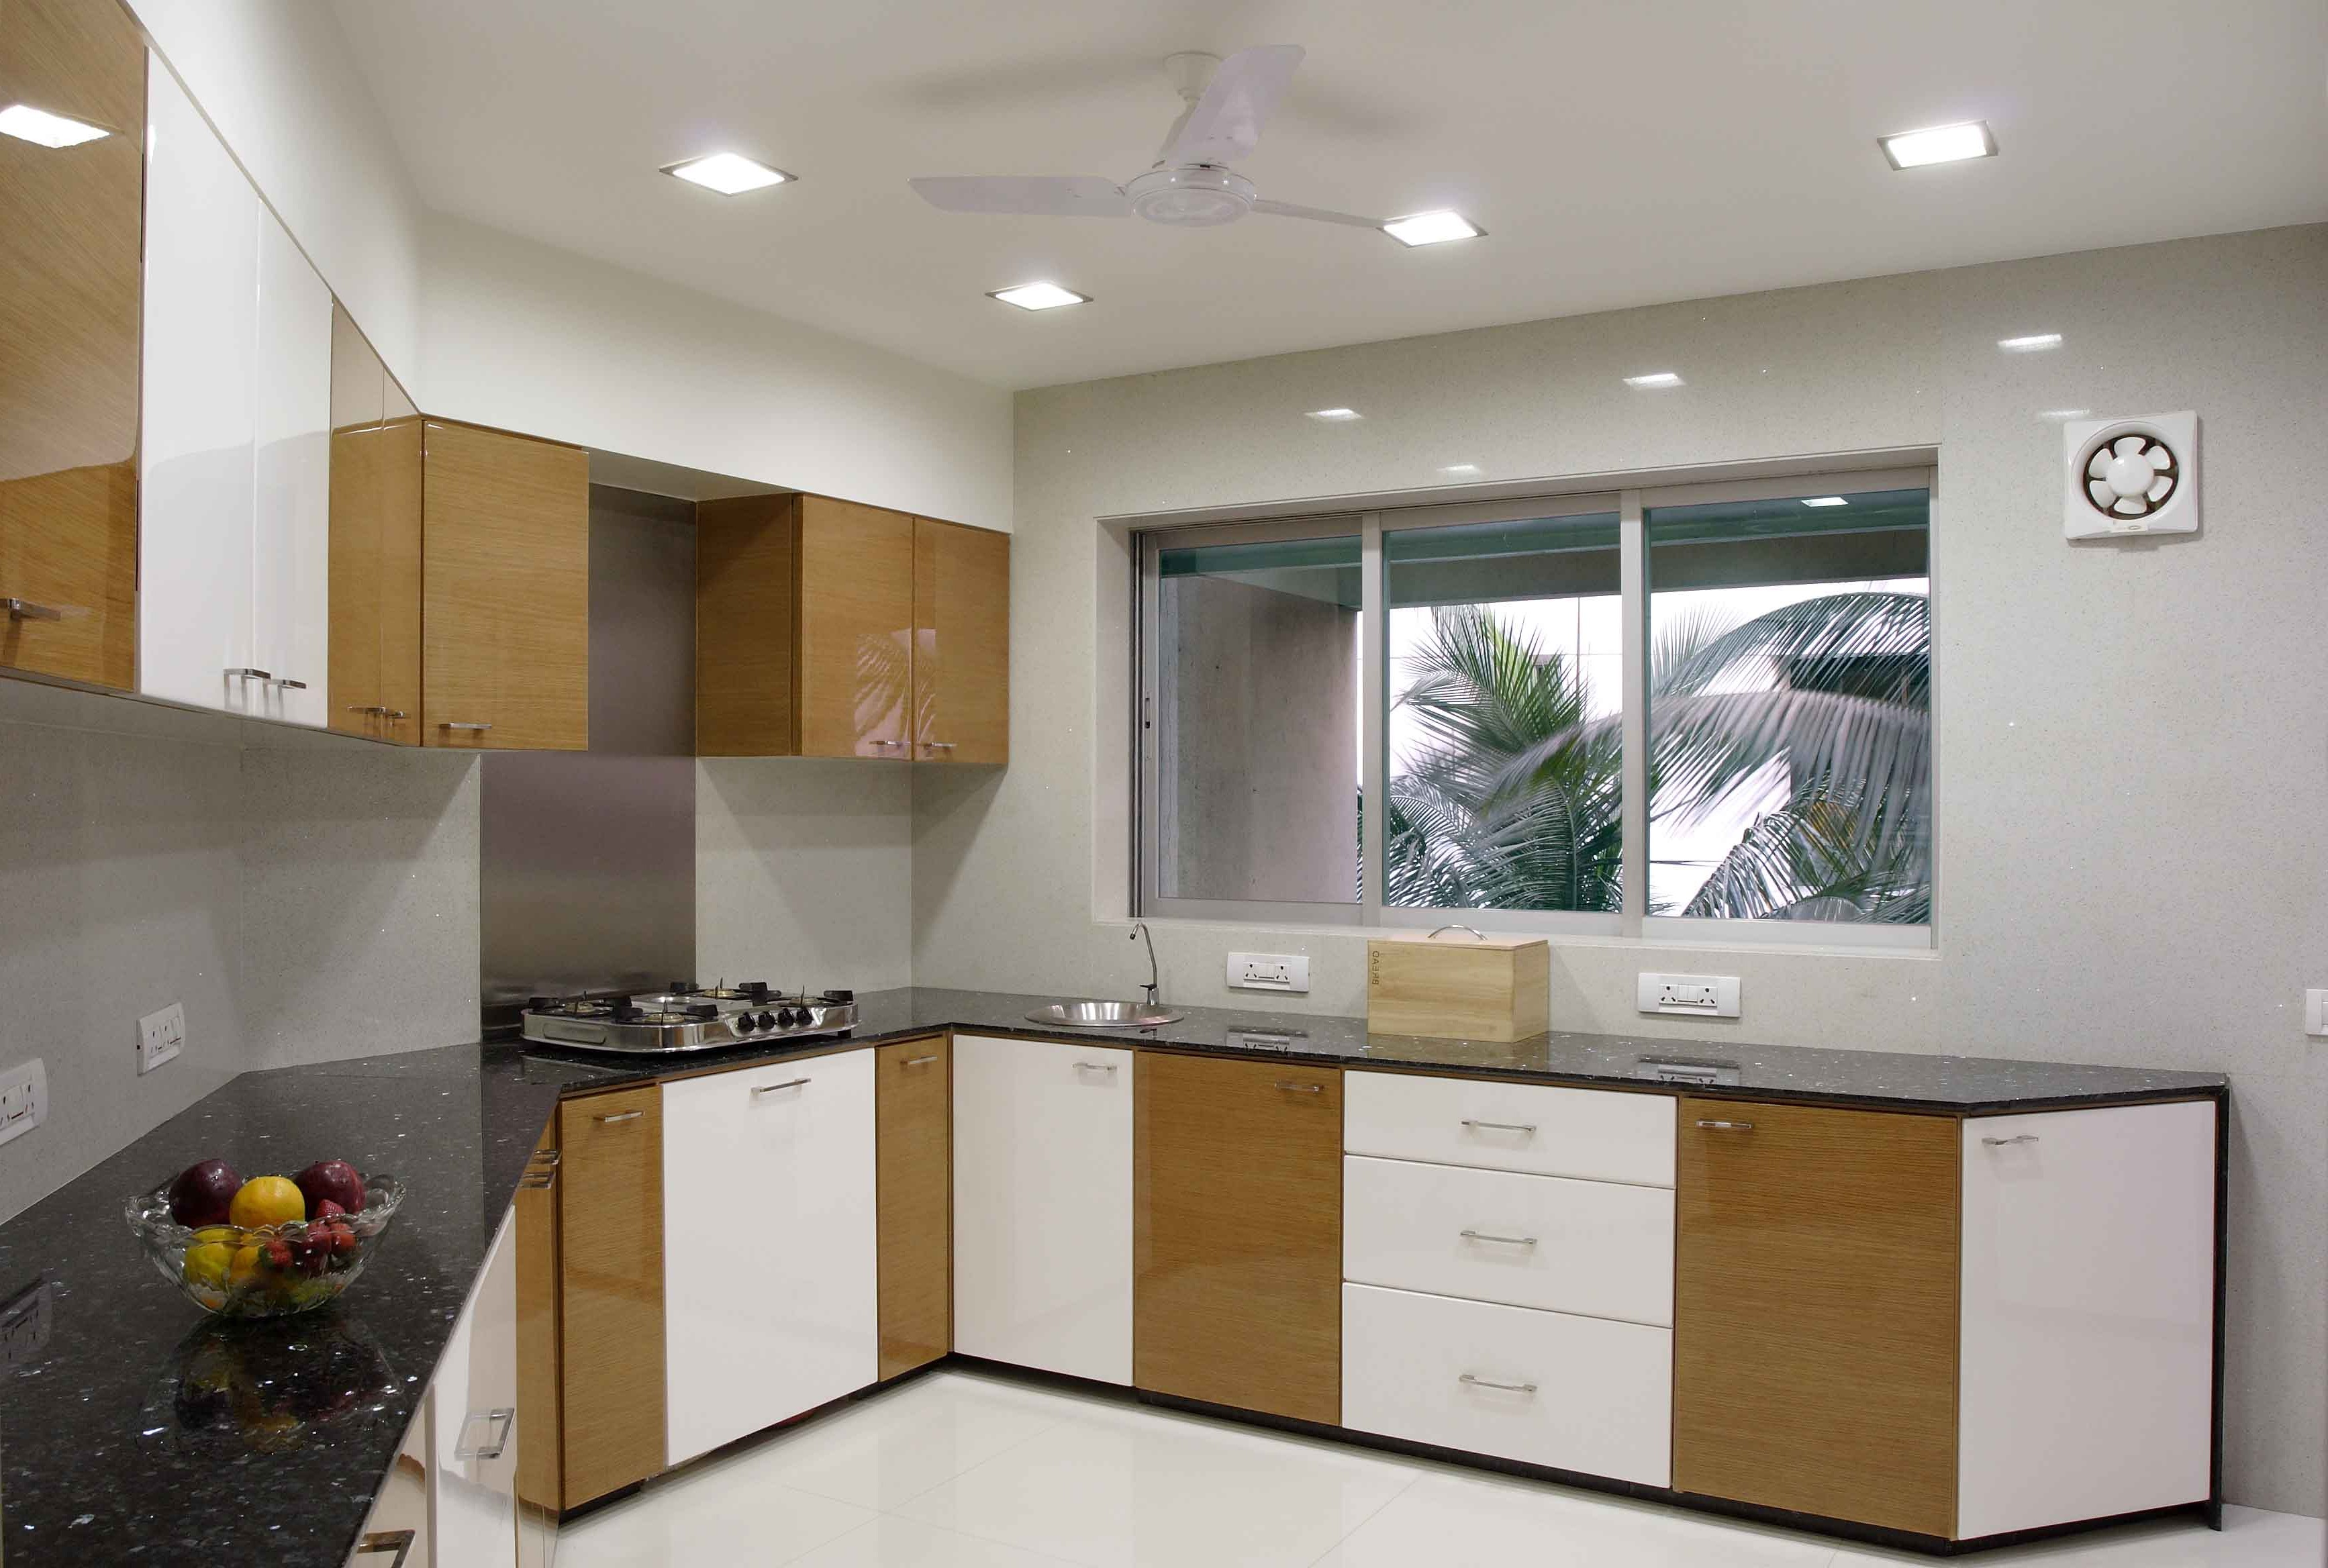 Cost Of Modular Kitchen Pictures Of Modular Kitchen Small Big Indian  Kitchen Designs L Shaped Modular